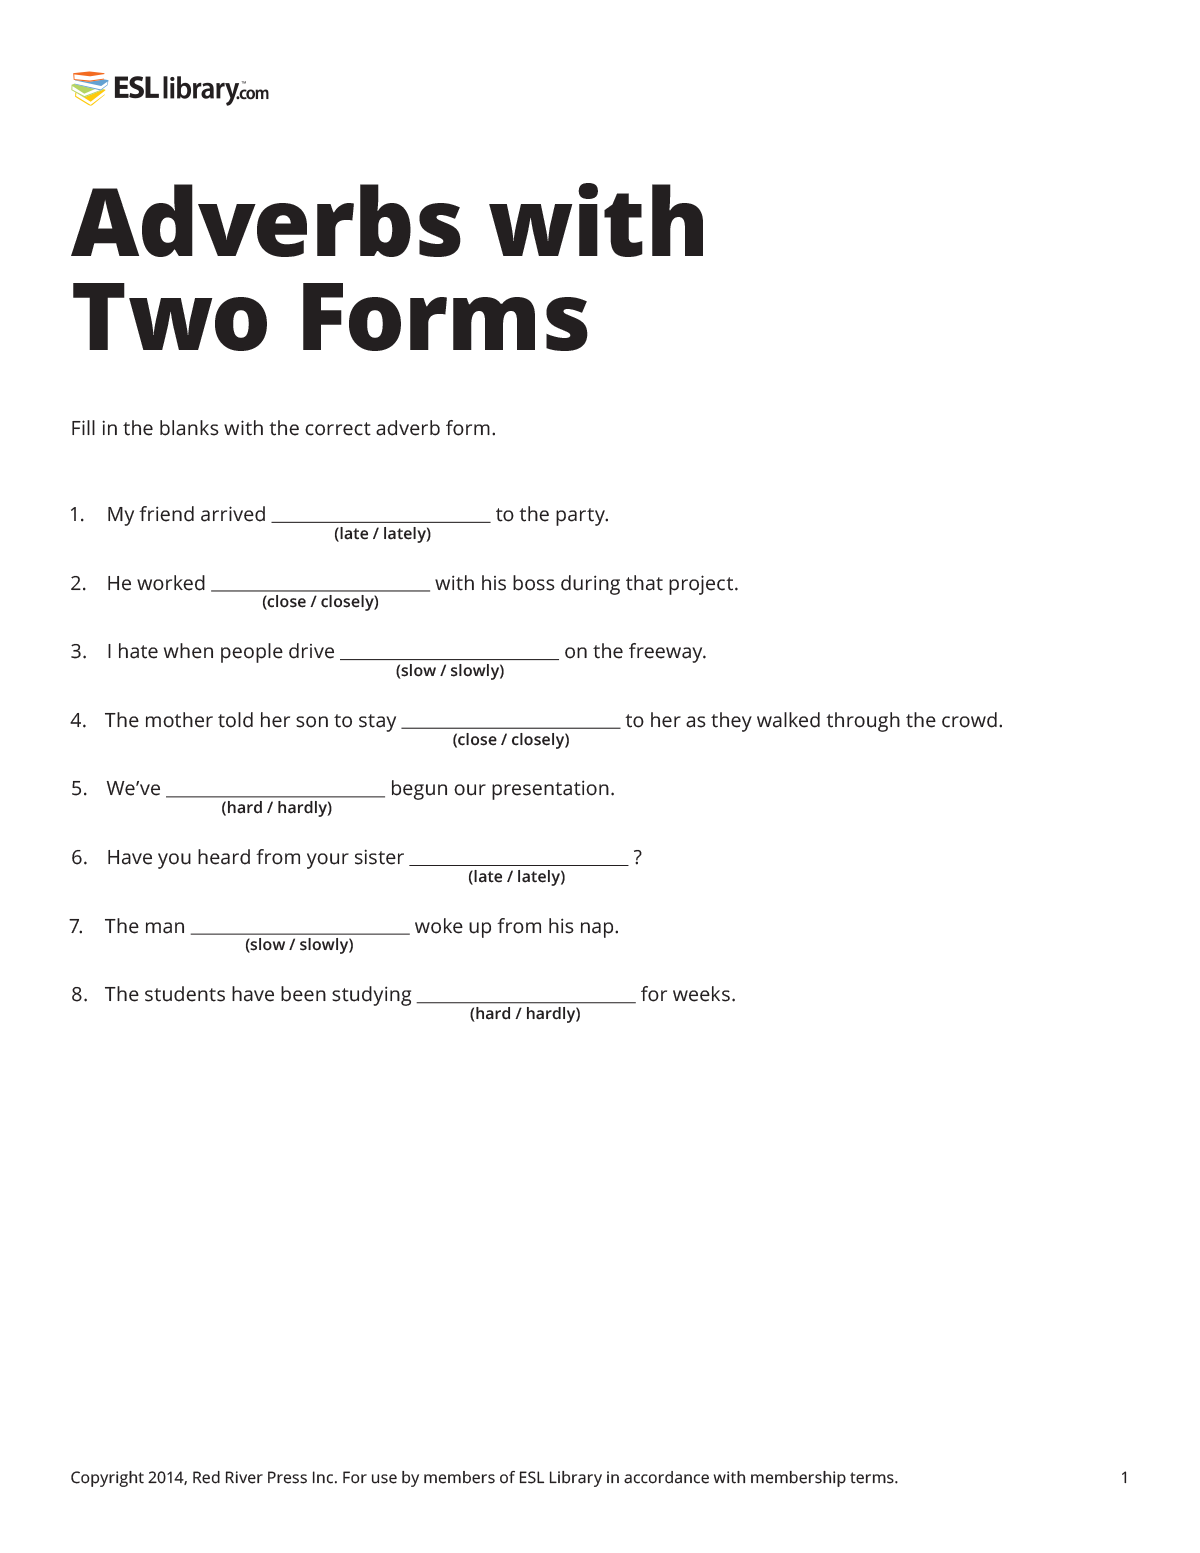 Worksheet Adverb In A Sentence adverbs with two forms esl library blog download the adverb pdf